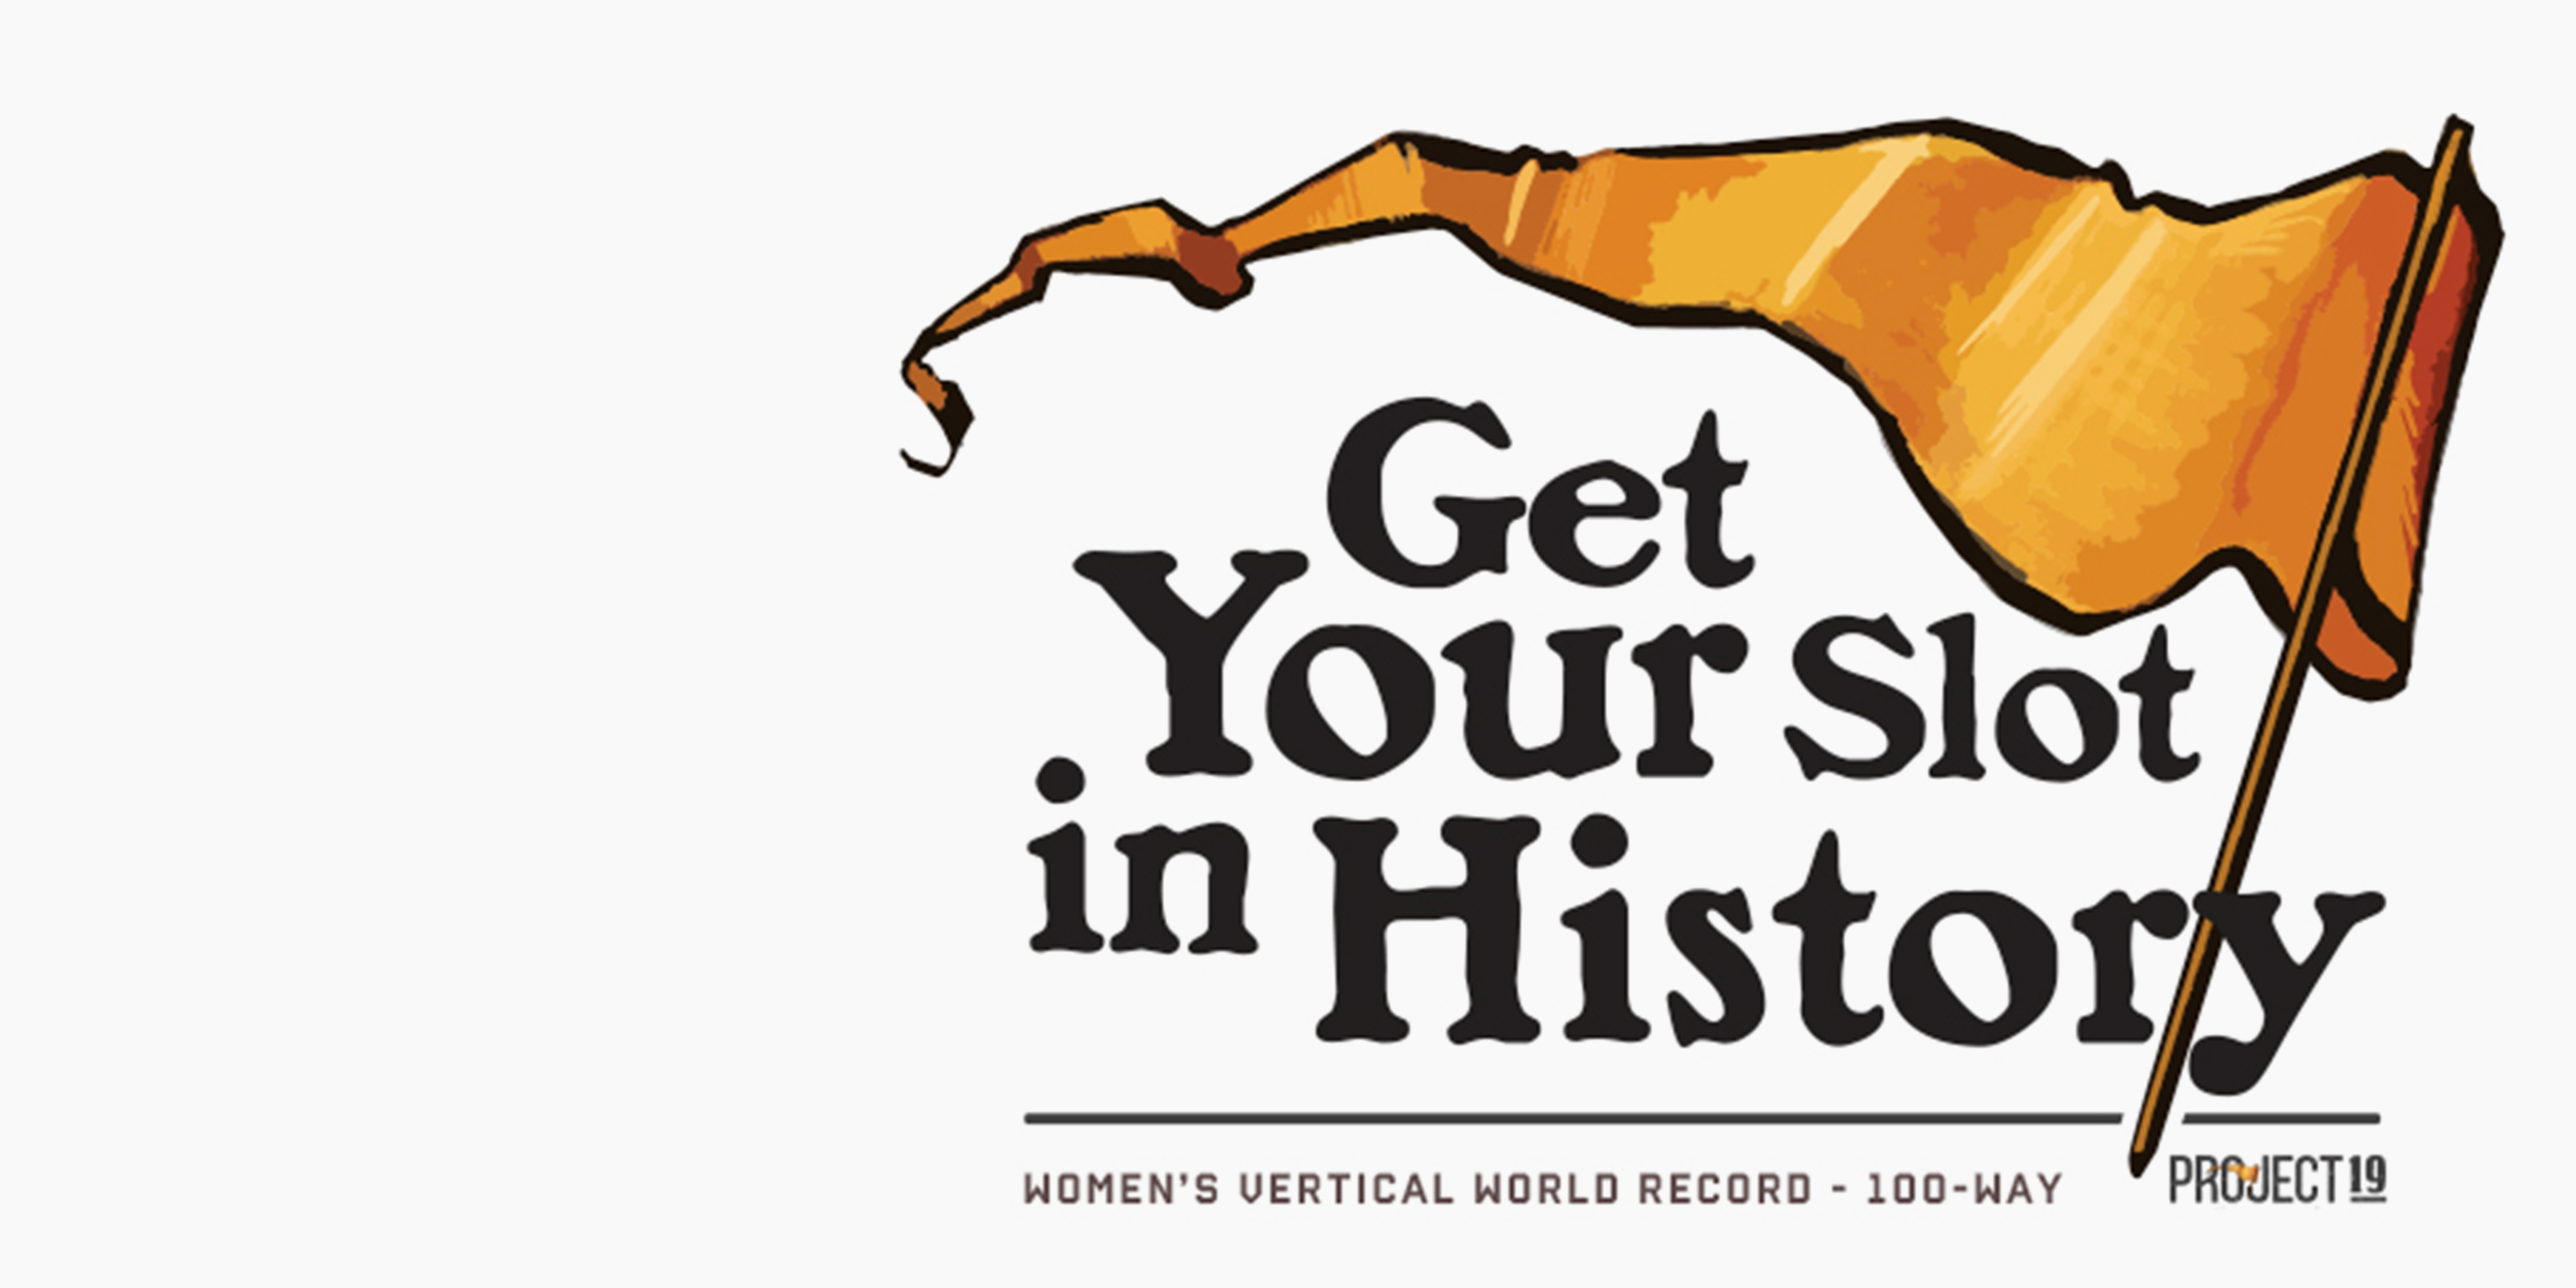 Get your slot in history — fordesign.com